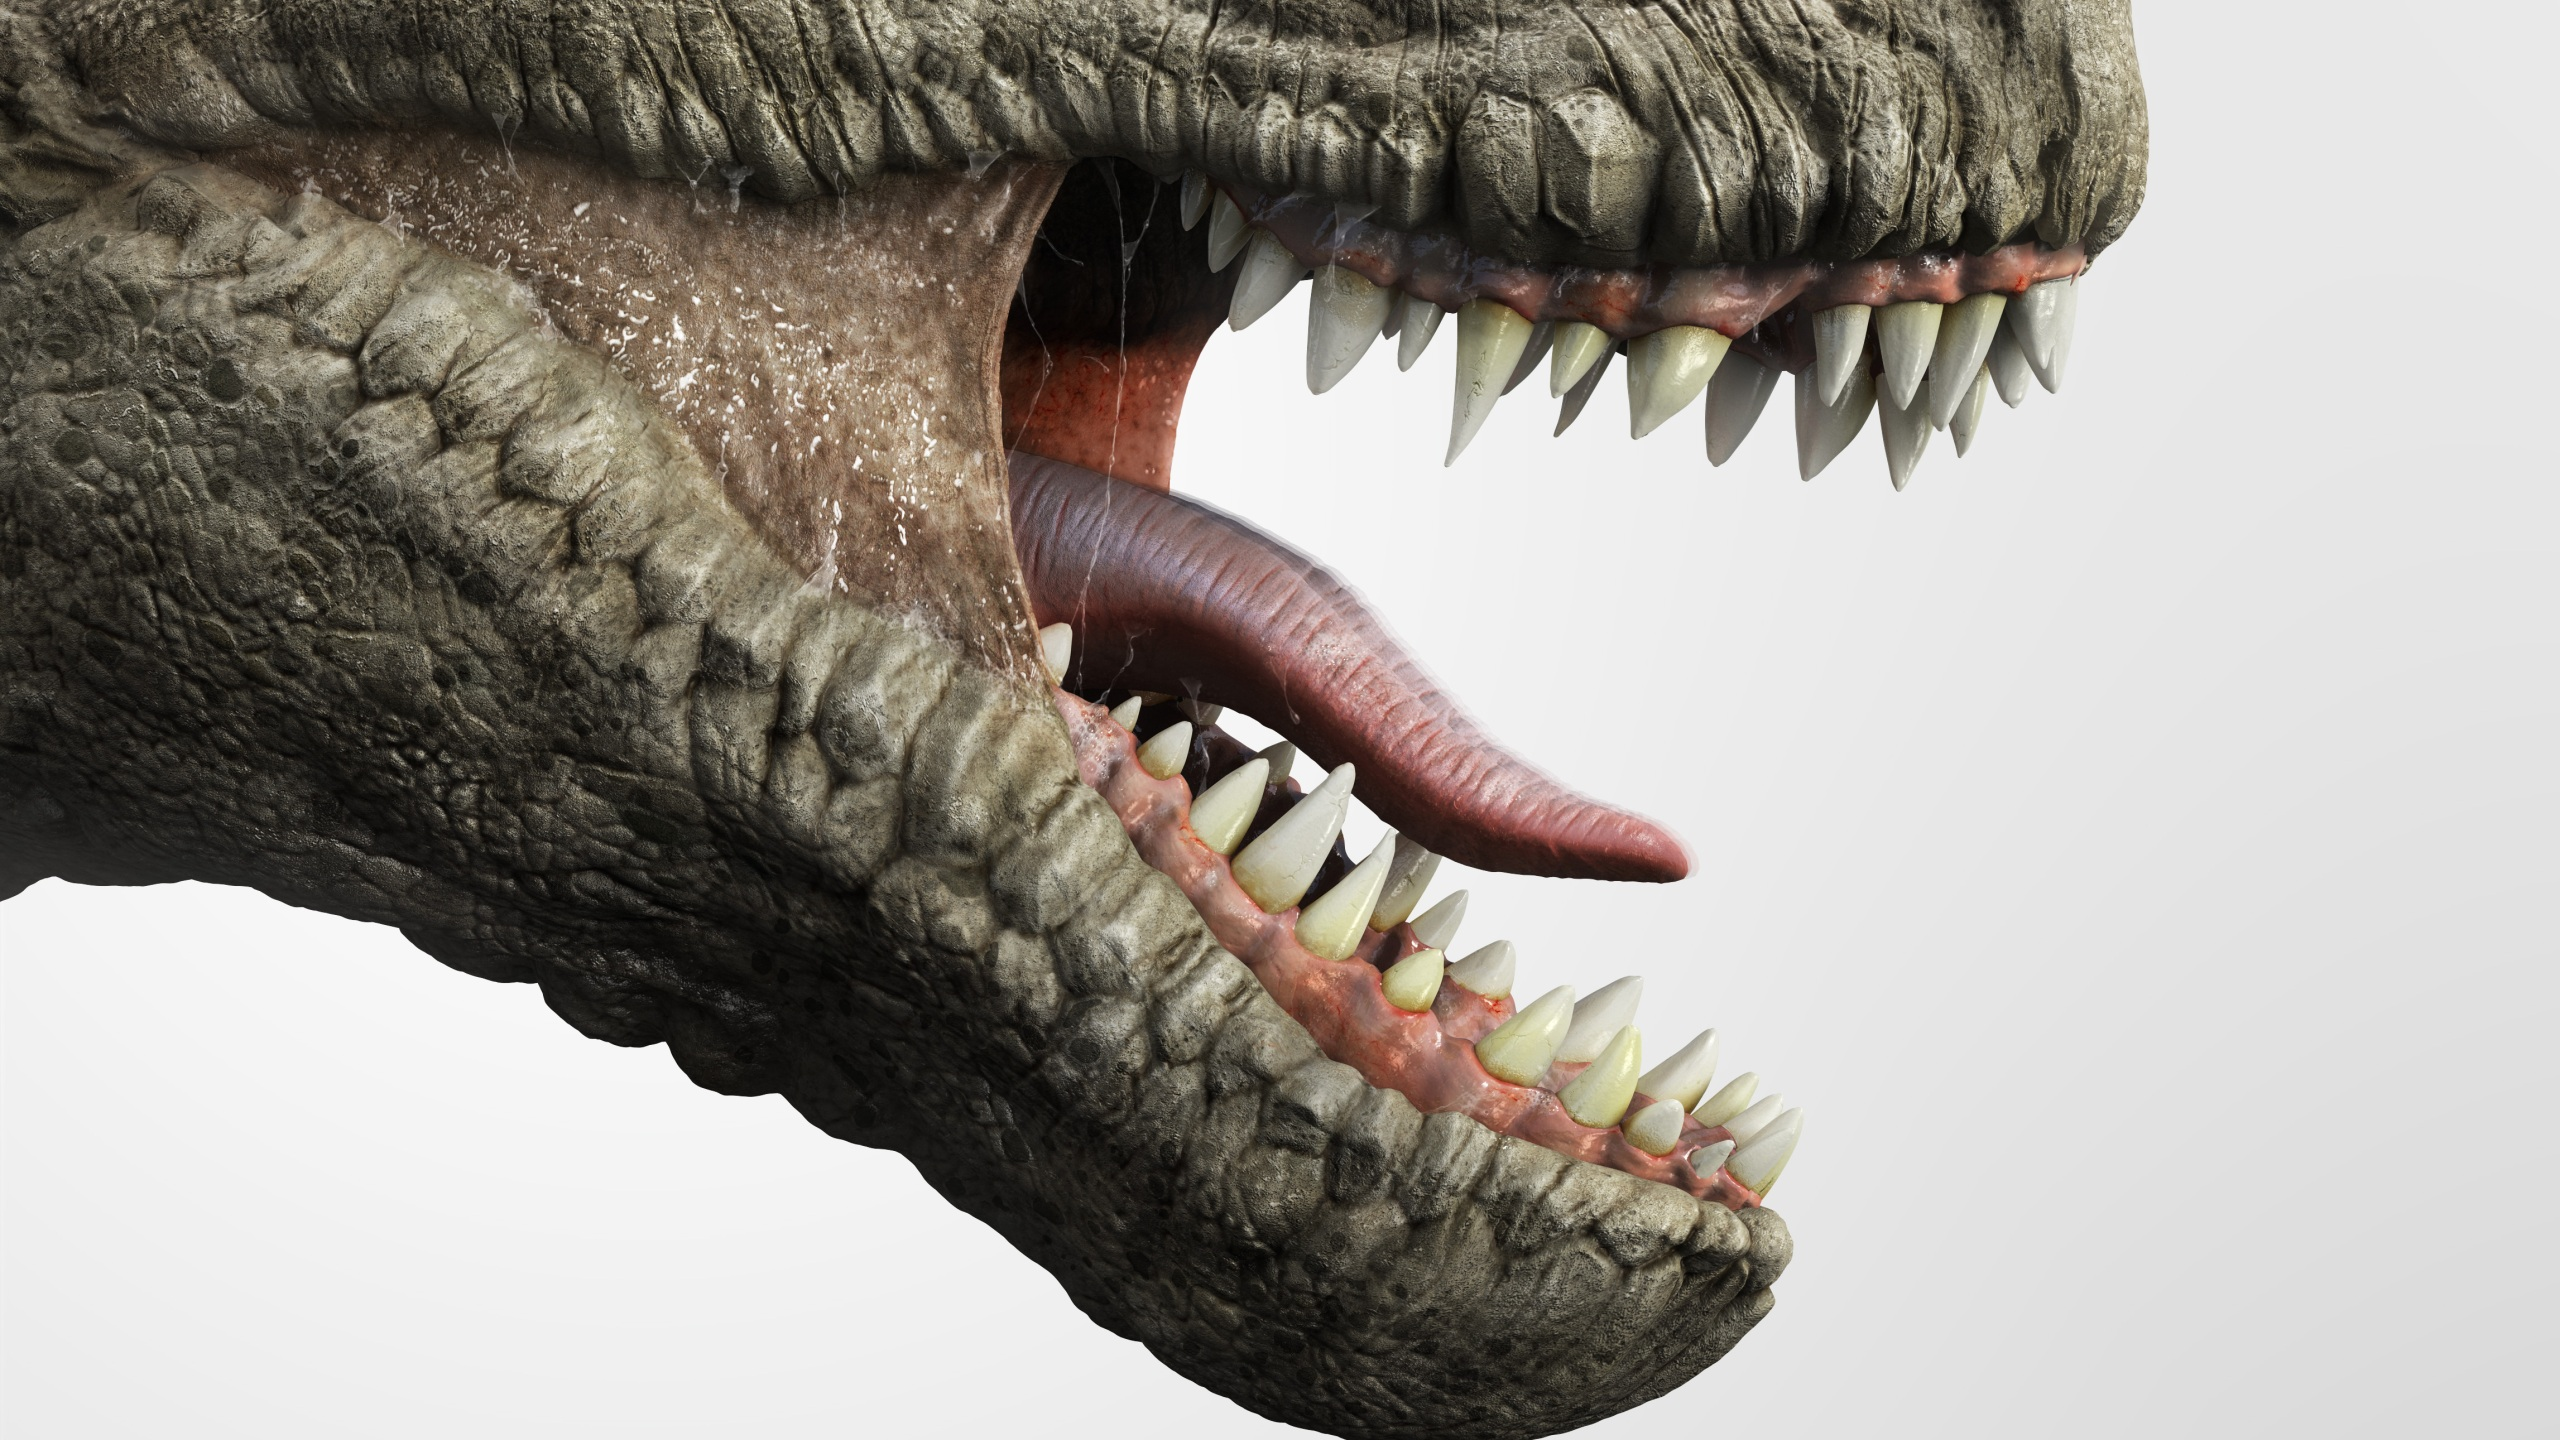 Close up of T-rex dinosaur mouth